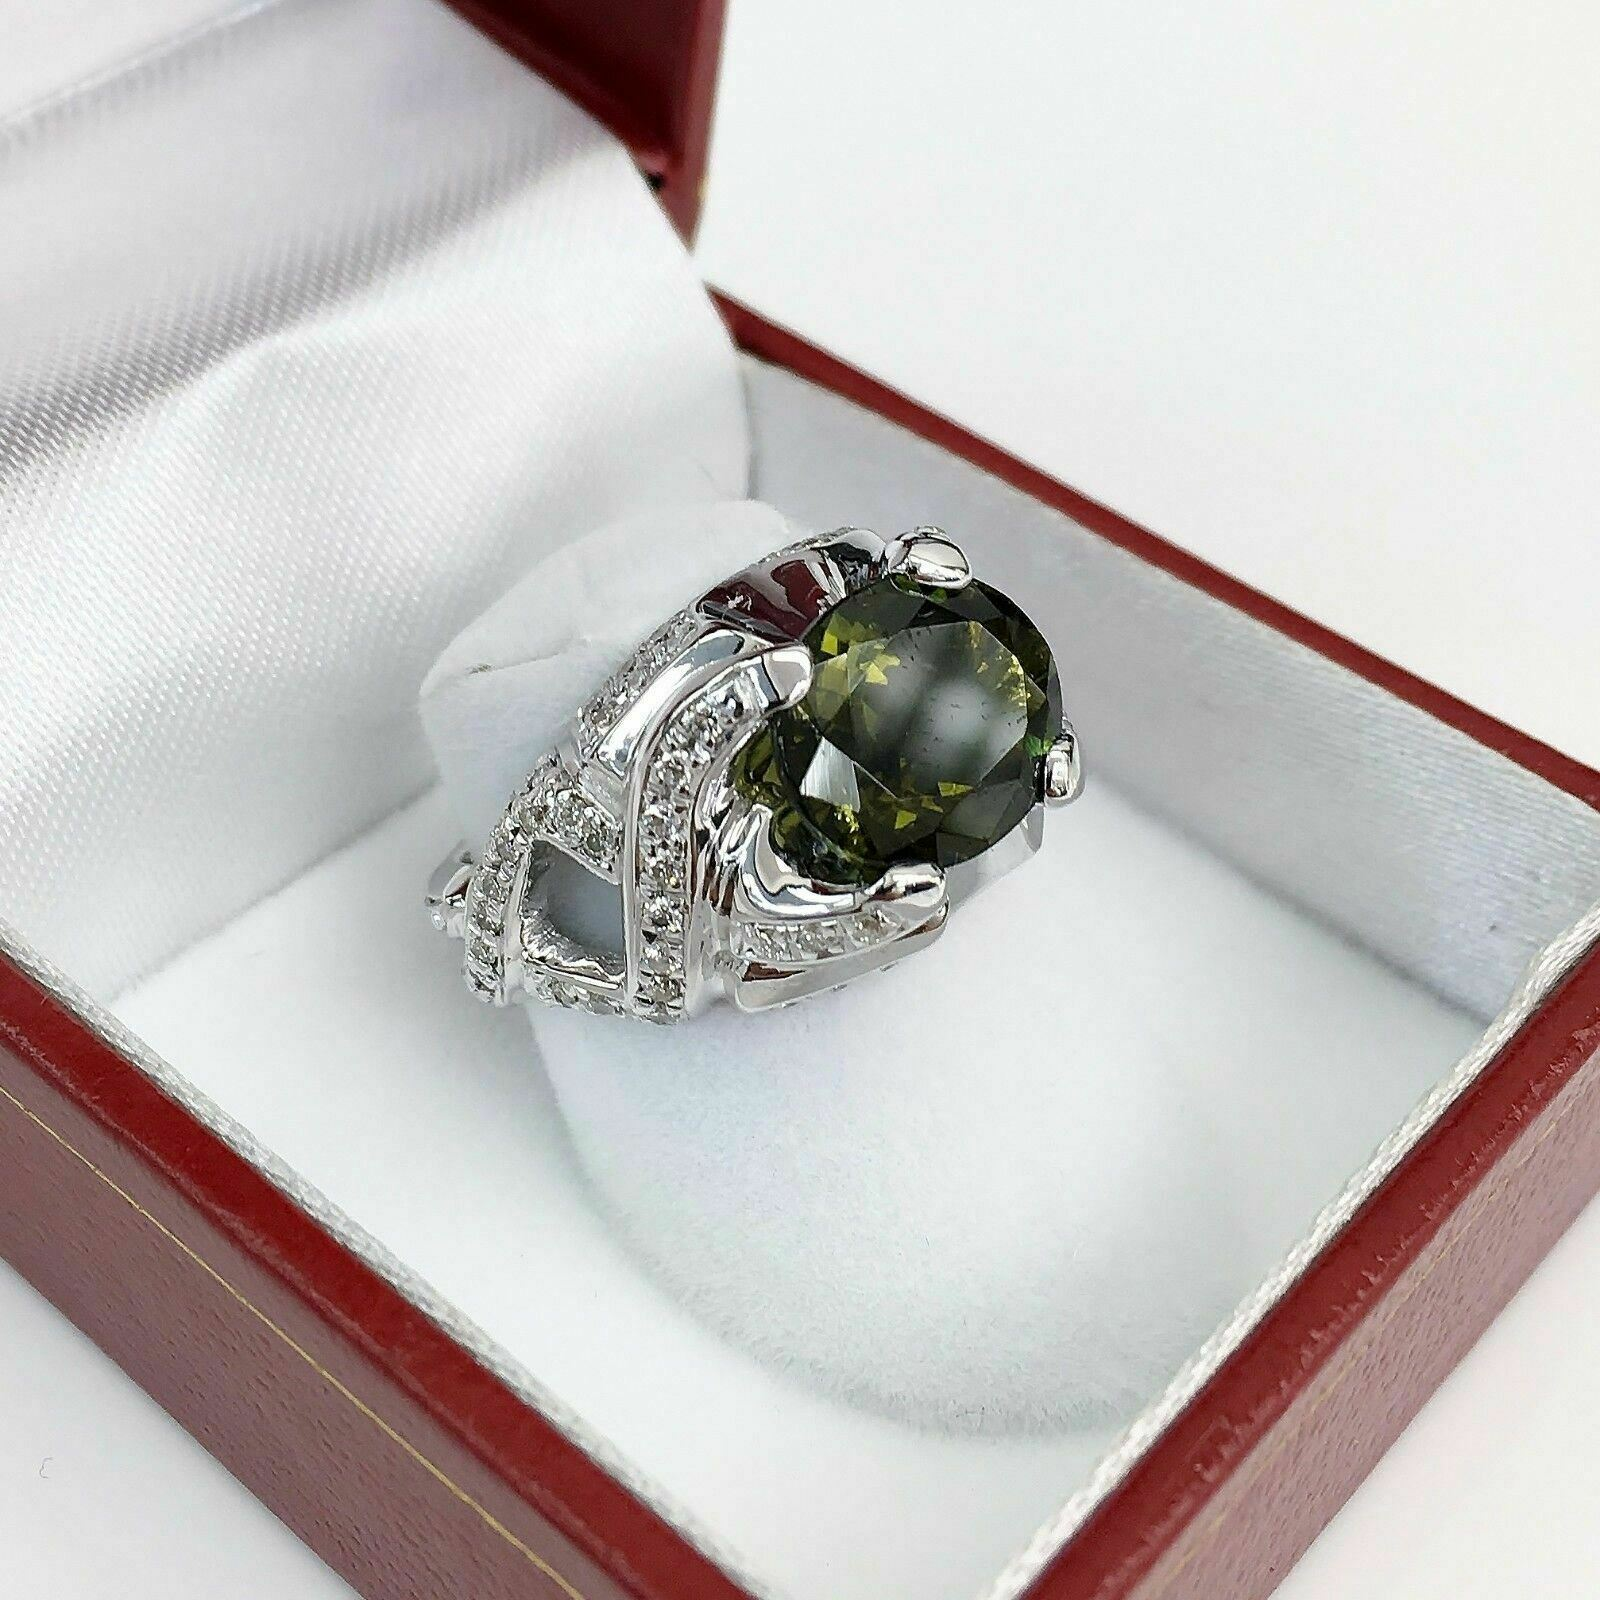 4.02 Carats t.w. Diamond & Tourmaline Celebration Cocktail Ring Center is 3.14CT